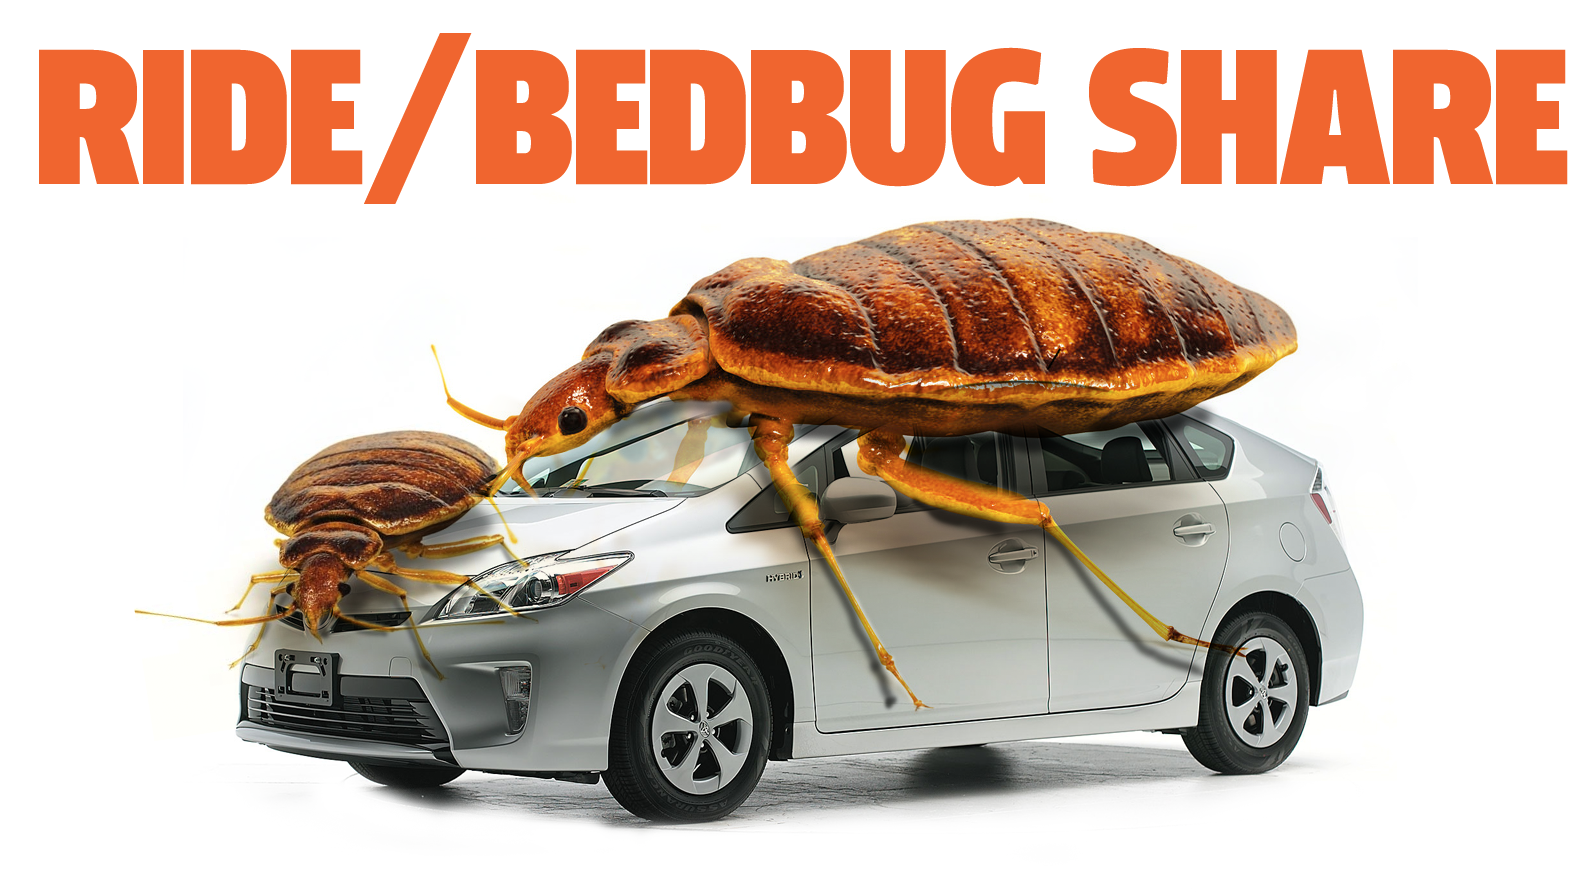 Dallas Exterminator Treats '5 To 10' Ride Share Cars A Week For Bed Bug Infestations